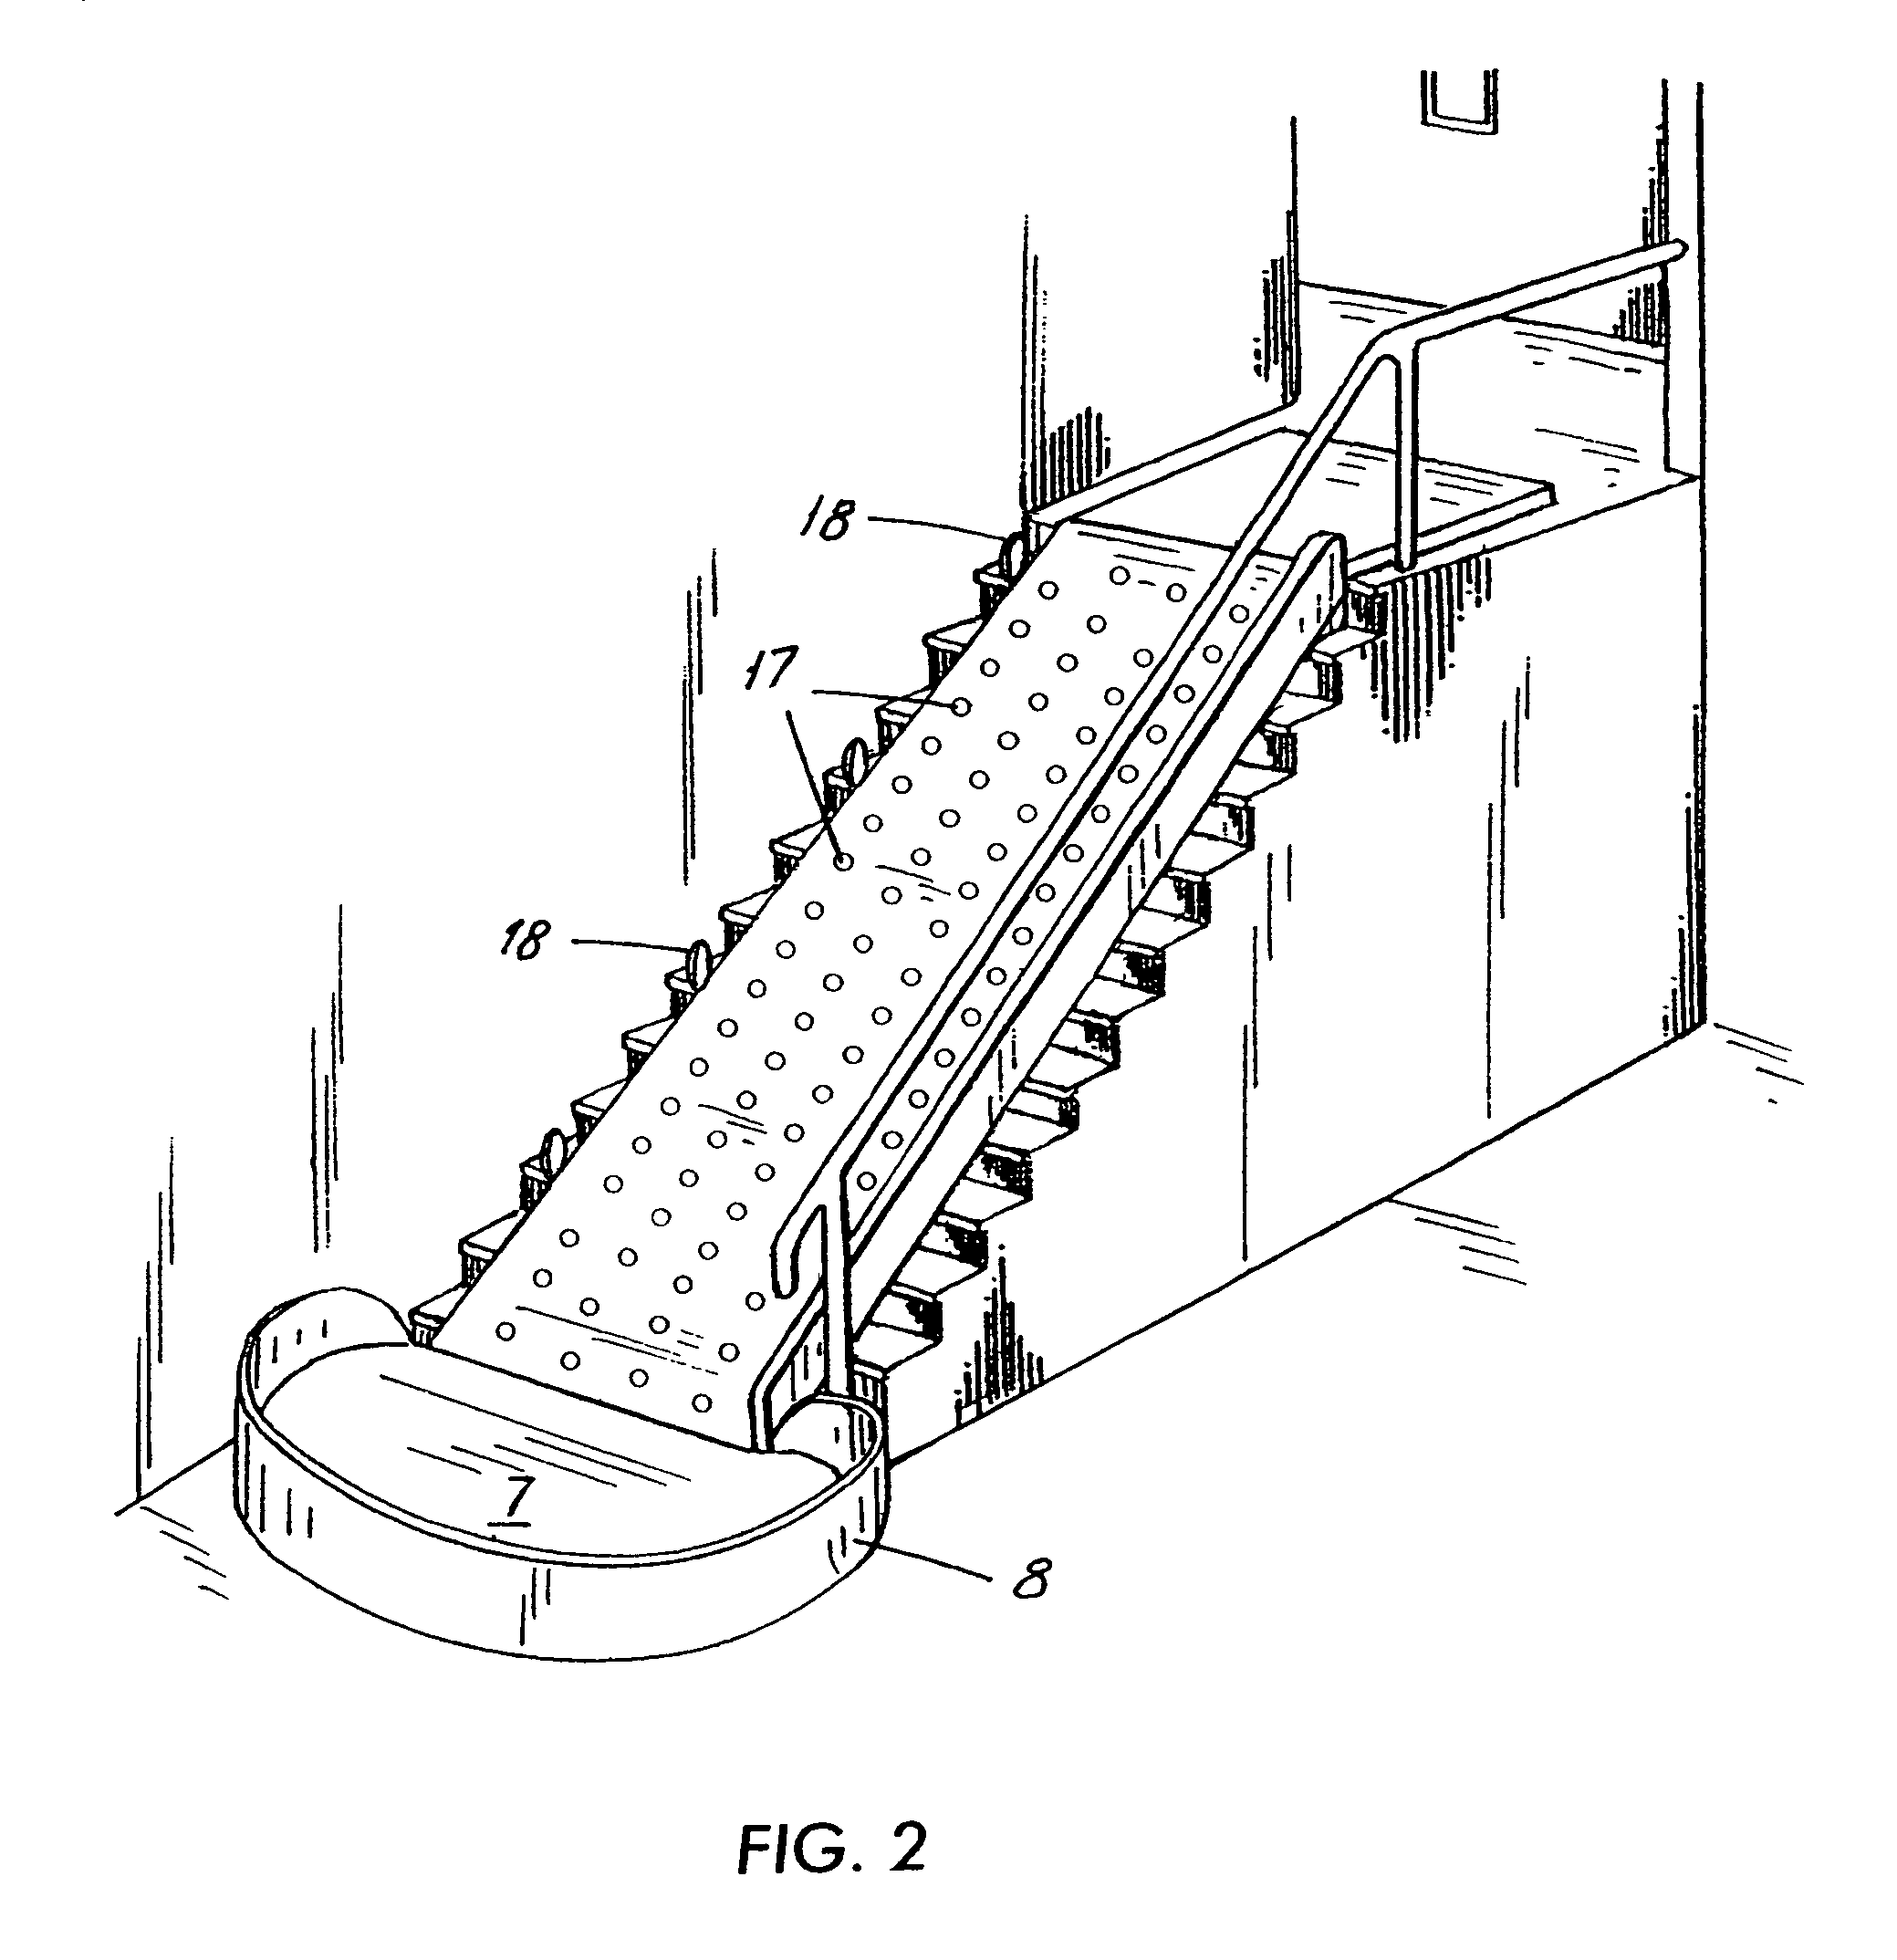 Folding Staircase Patent Us7494419 Indoor Stair Slide For Transporting The